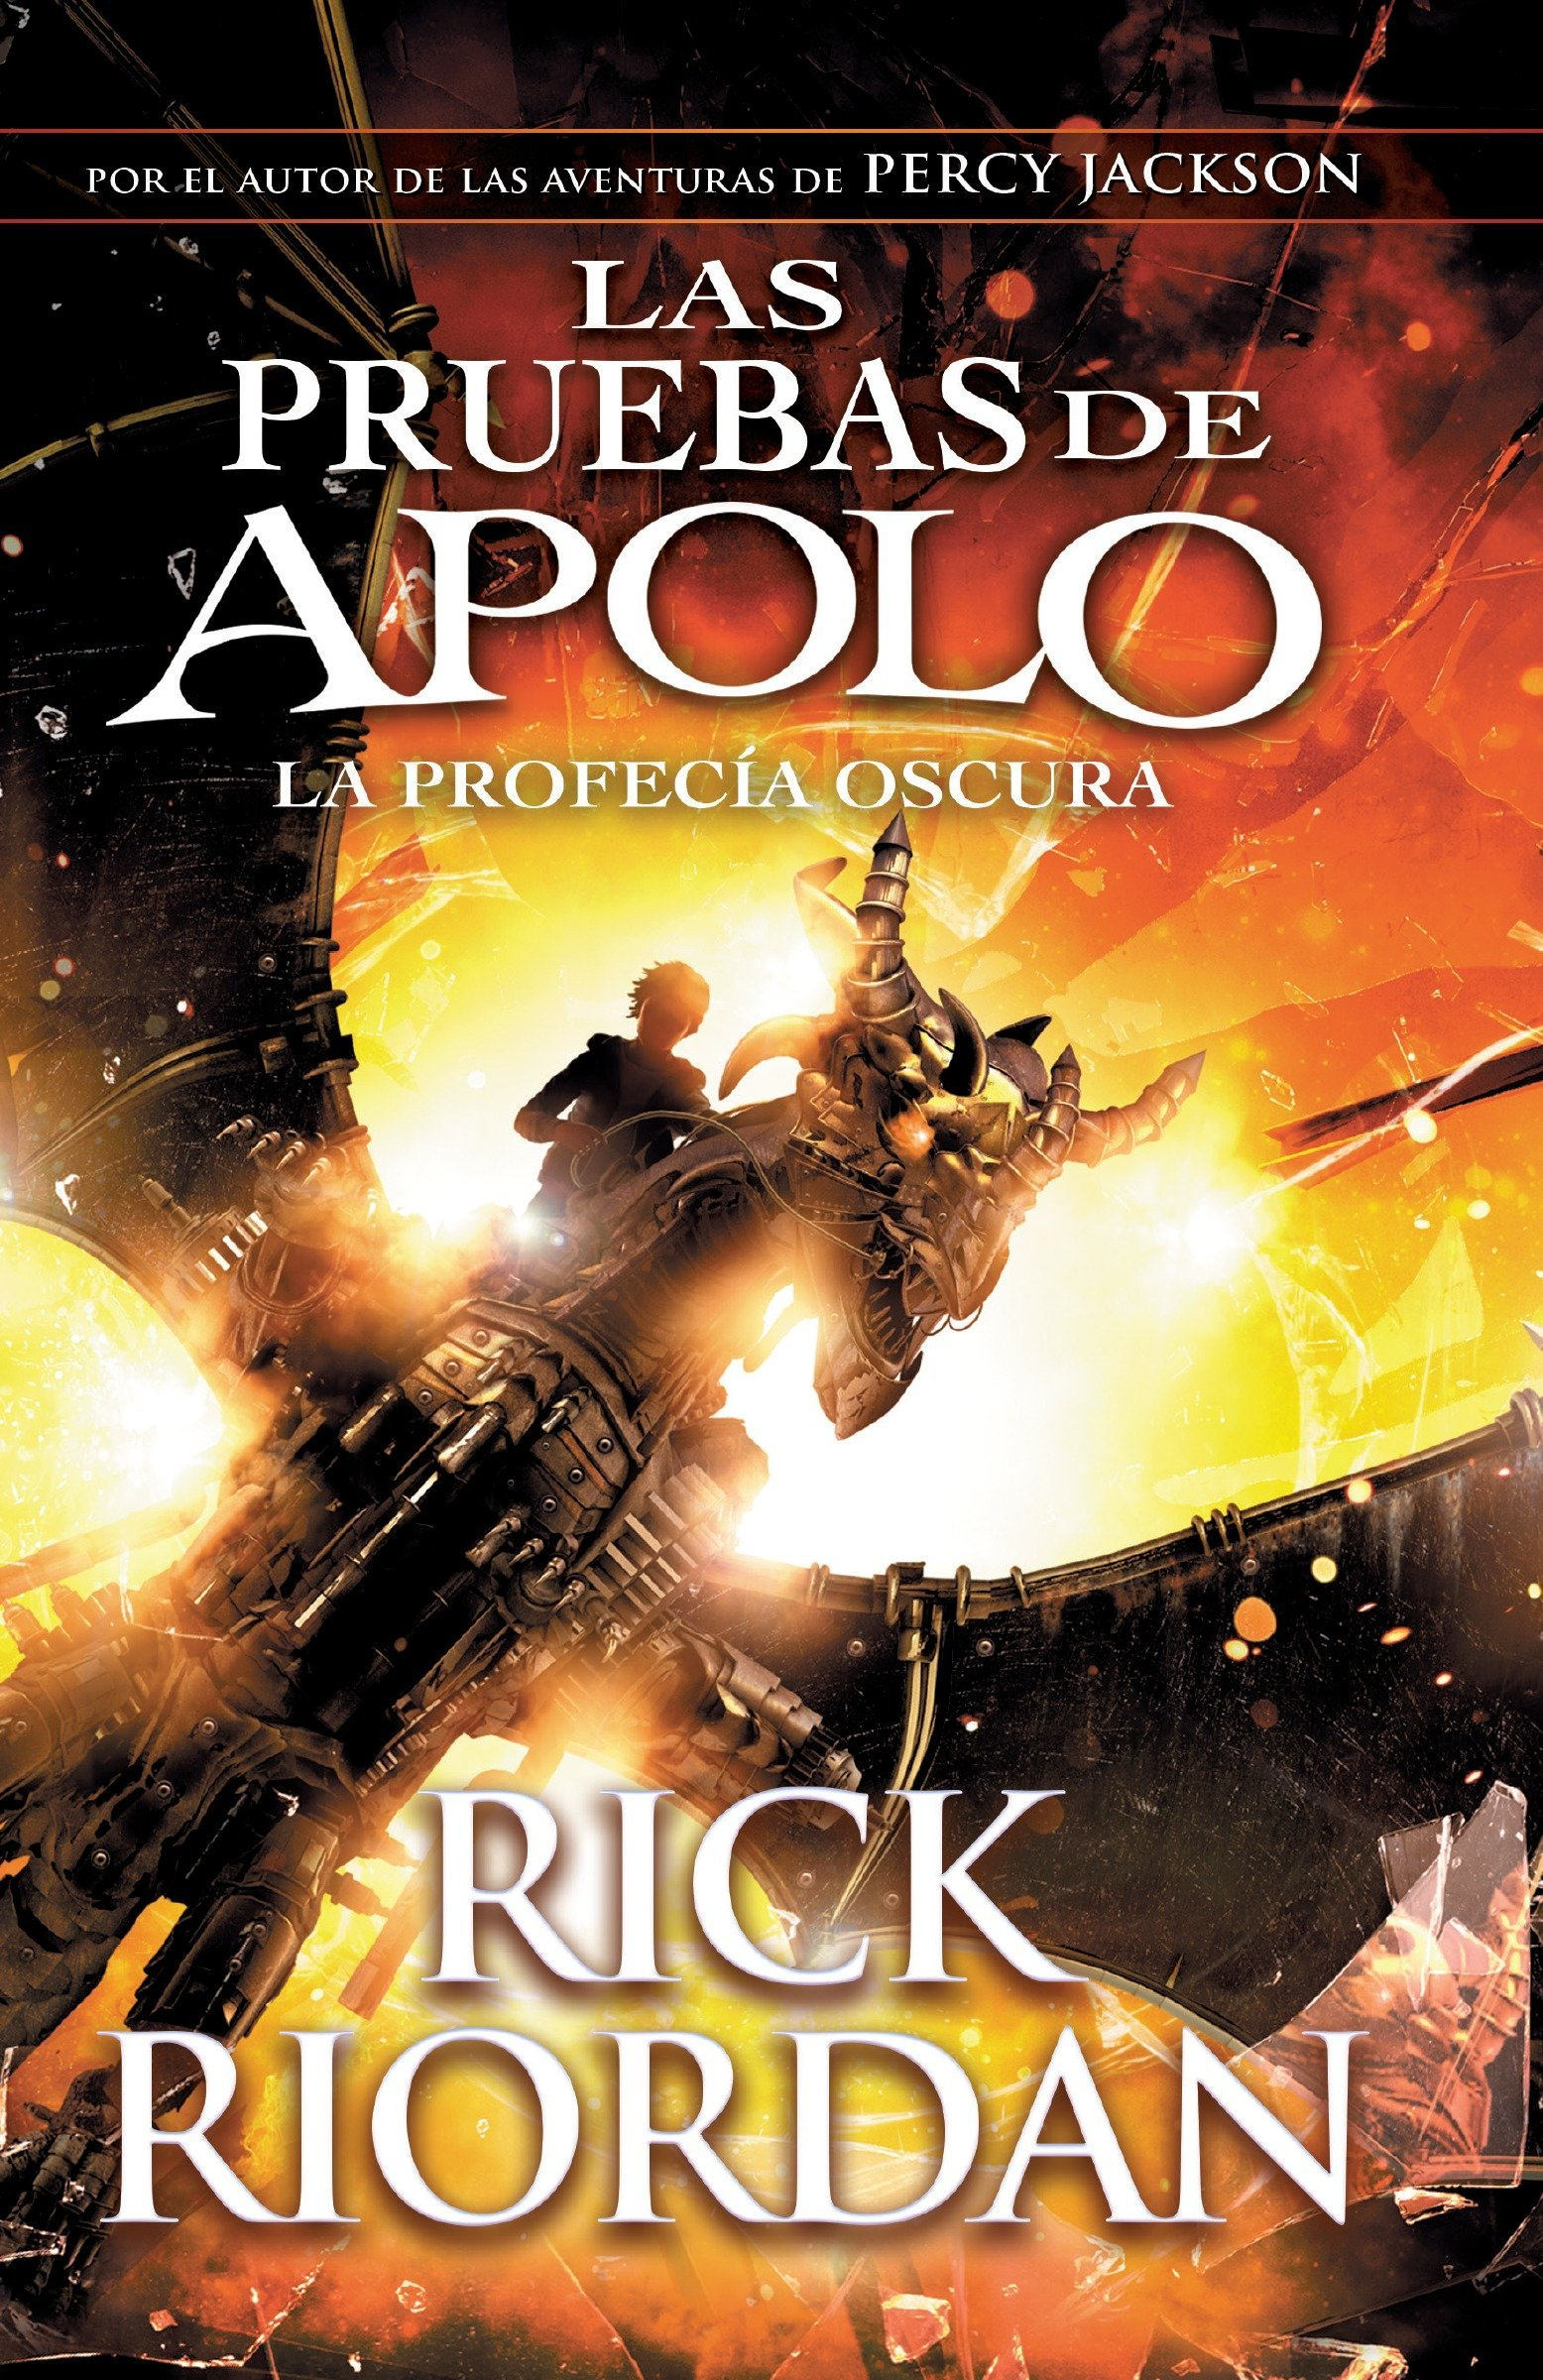 Las Pruebas de Apolo, Libro 2: La Profecía Oscura: spanish-Language Ed Of: The Trials of Apollo, Book Two: The Dark Prophecy Las pruebas de Apolo / Trials ...